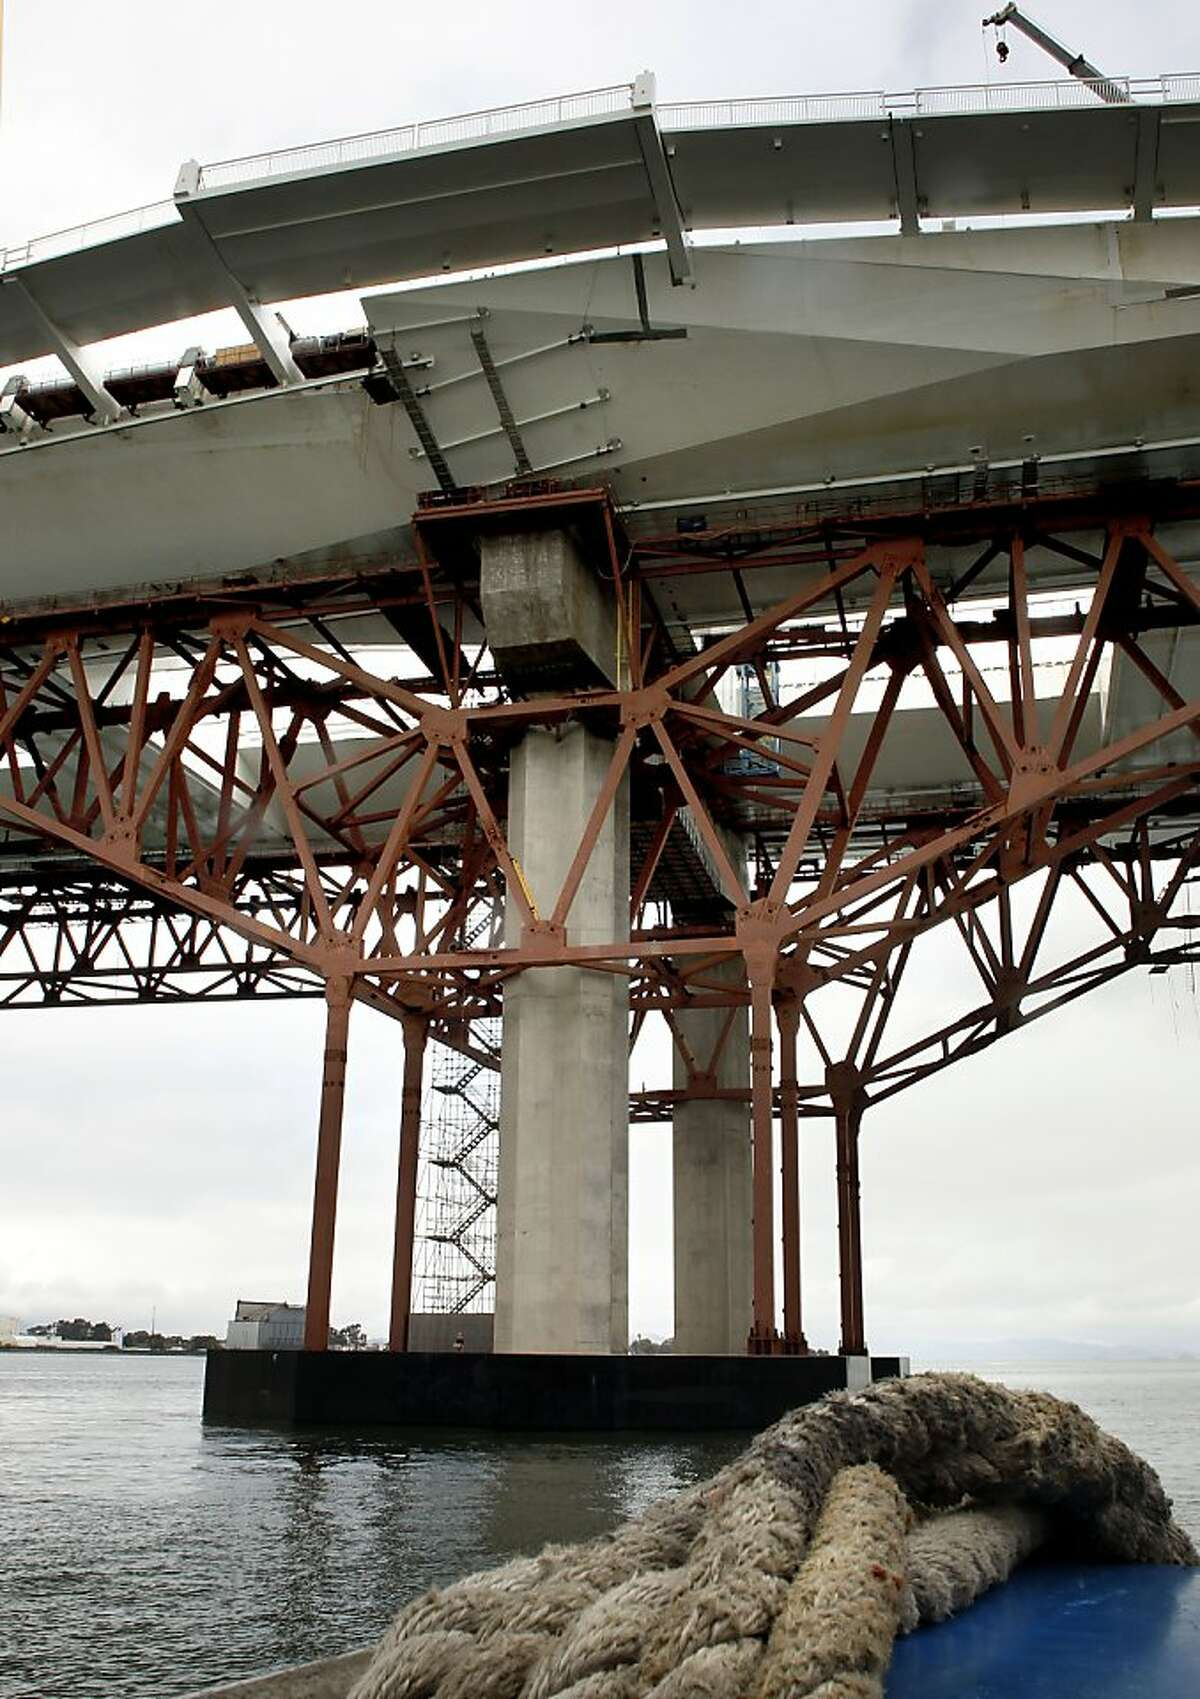 Pier E-2 of the new eastern section opt the Bay Bridge which contains the fractured anchor rods, as CalTrans conducts a boat tour of the impacted areas of new eastern section of the Bay Bridge on Wednesday Mar. 27, 2013, in Oakland, Ca. Inspections earlier this month found that 30 large bolts on the new eastern span of the Bay Bridge have fractured.